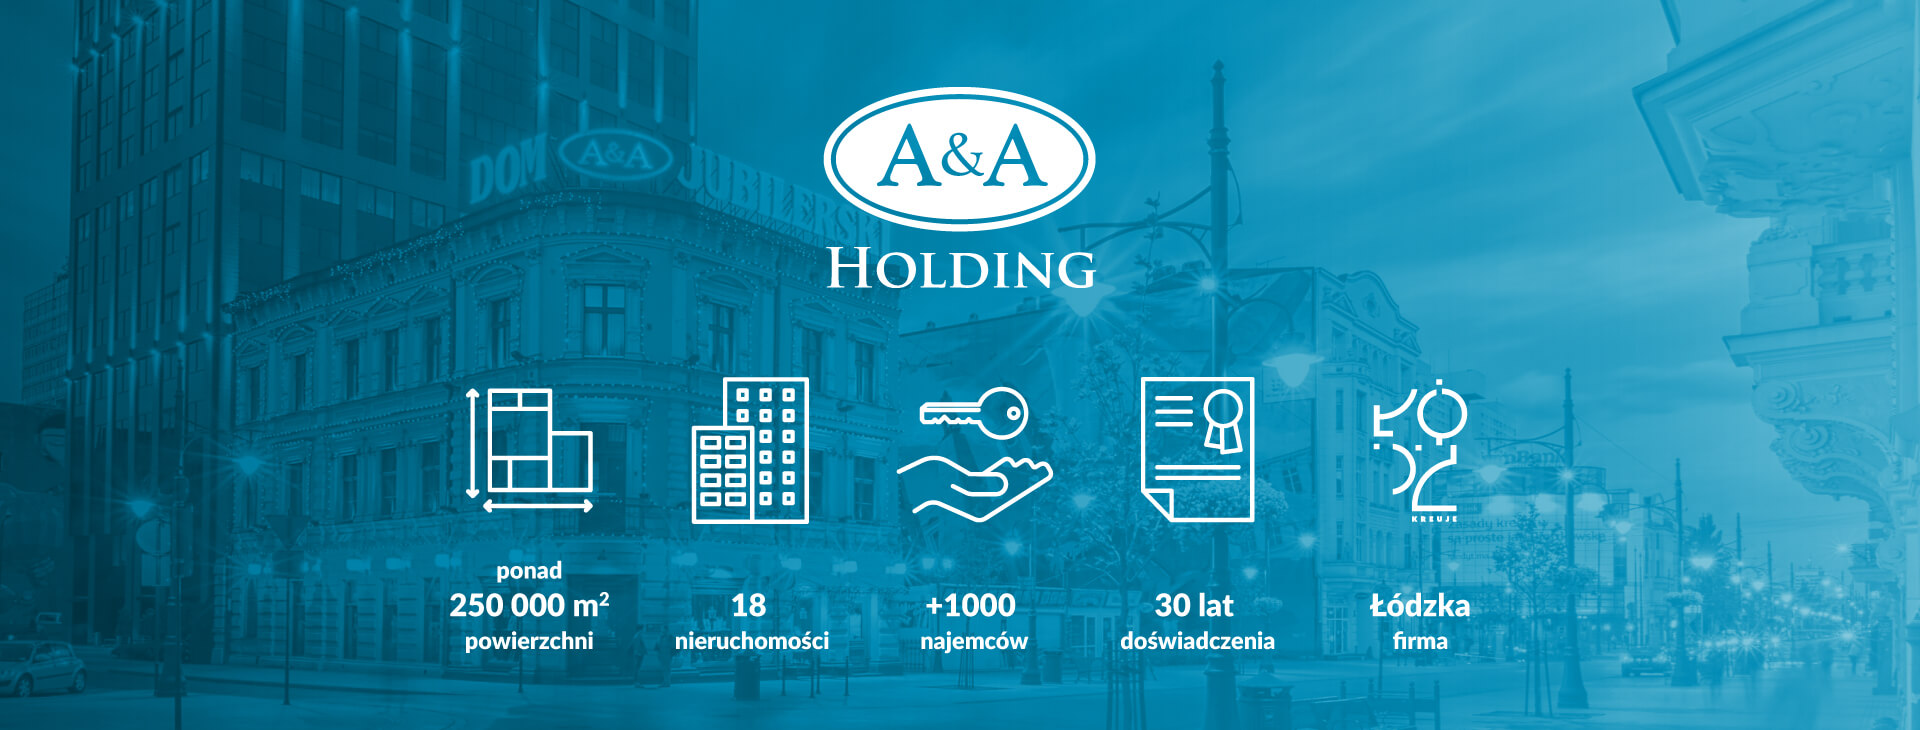 Opis A&A Holding